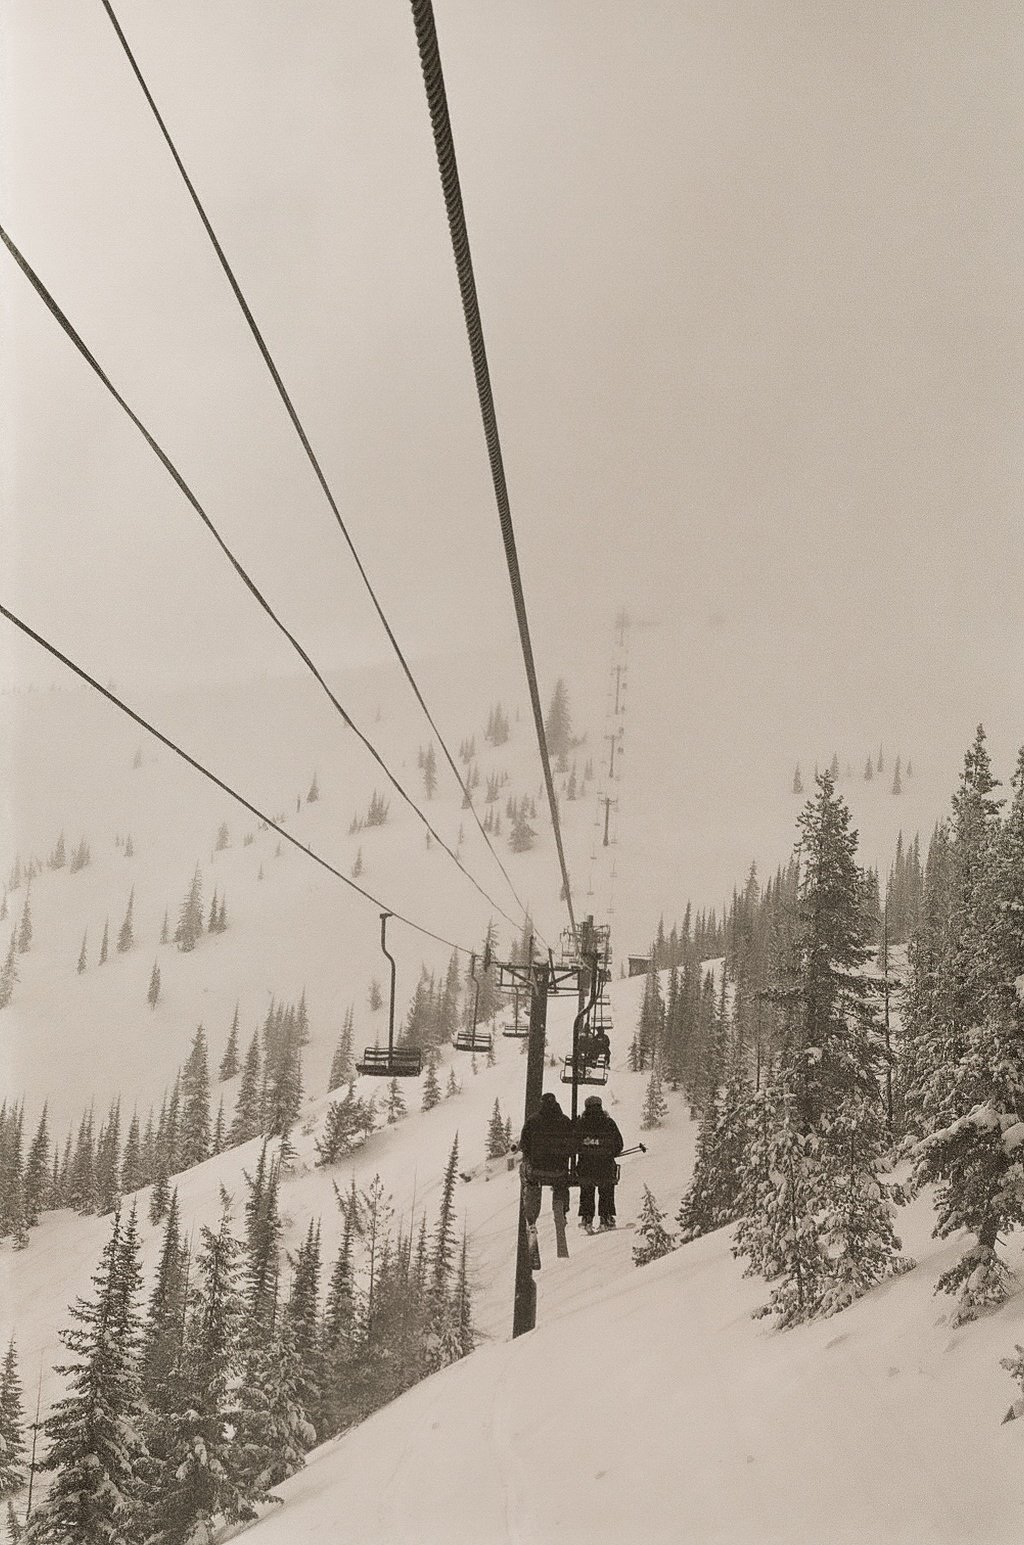 Foggy Lift Line